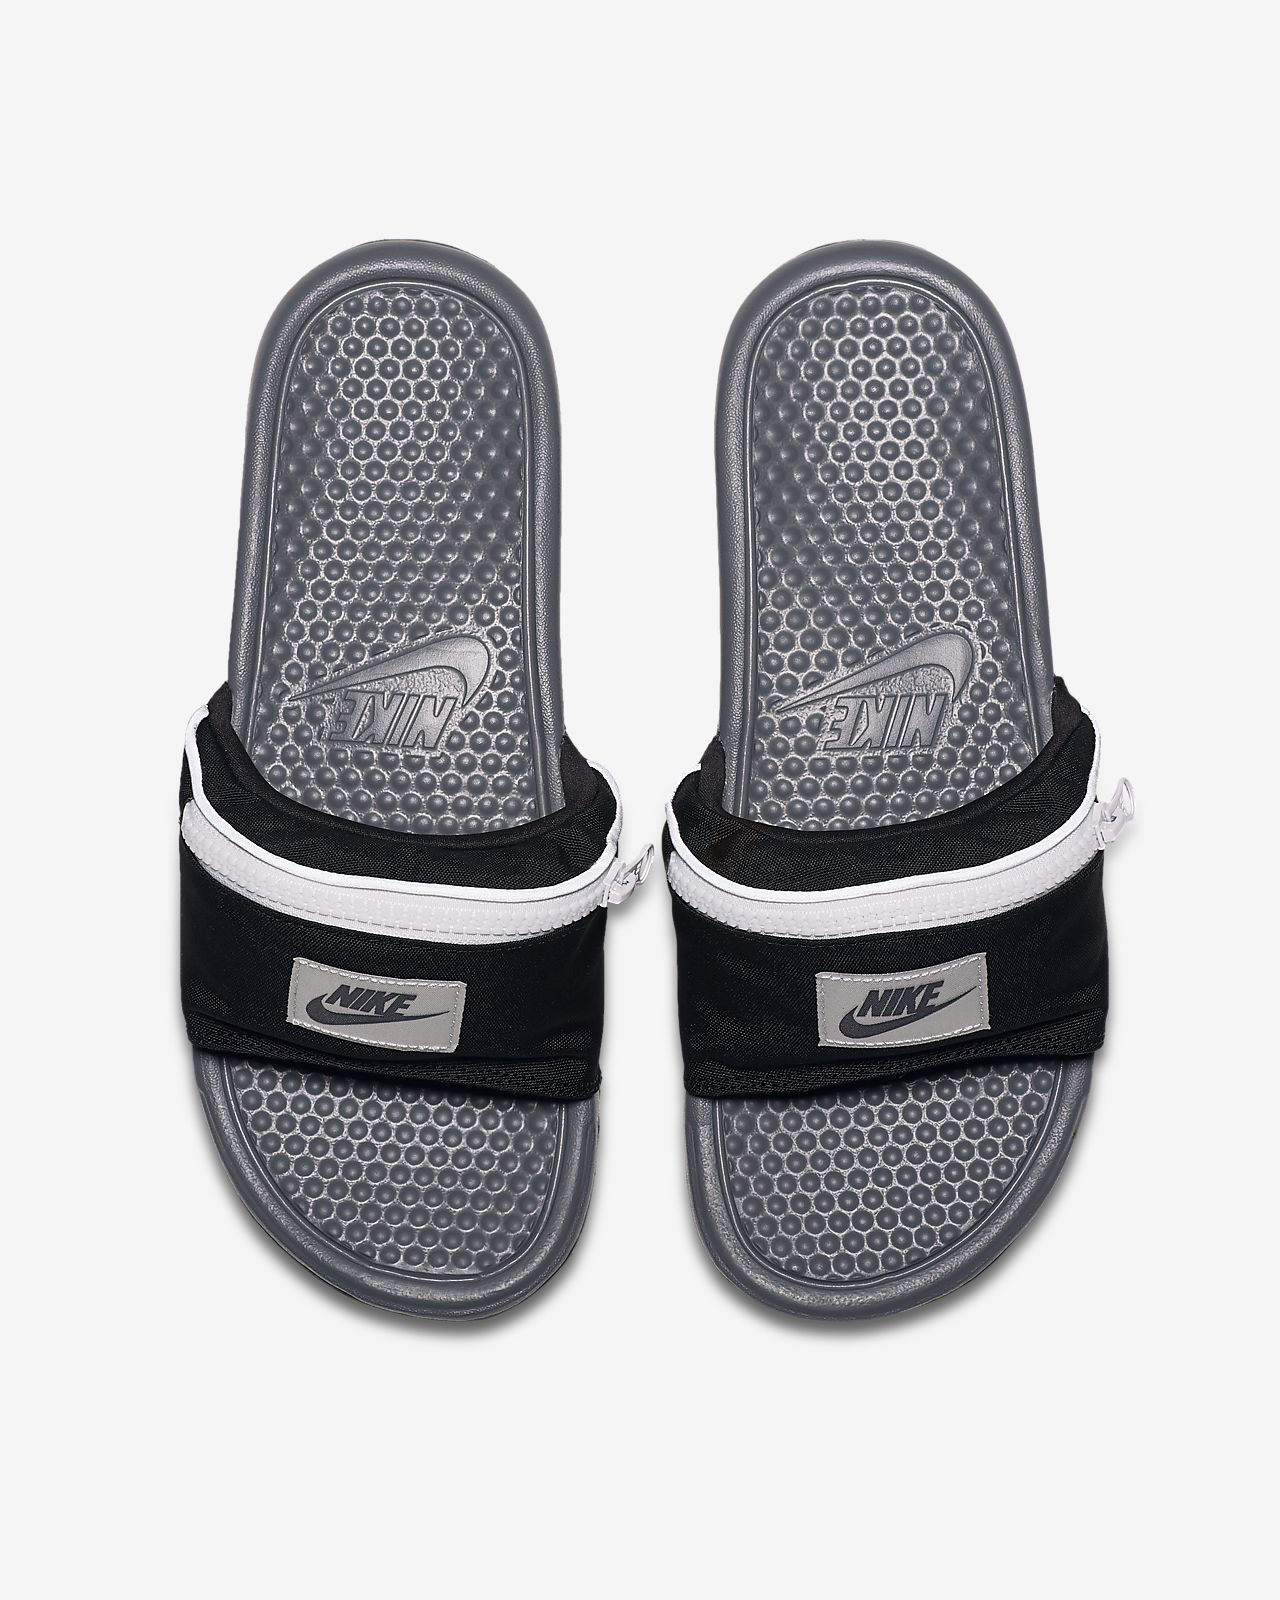 3d0720add Nike Benassi JDI Bum Bag Men s Slide. Nike.com GB